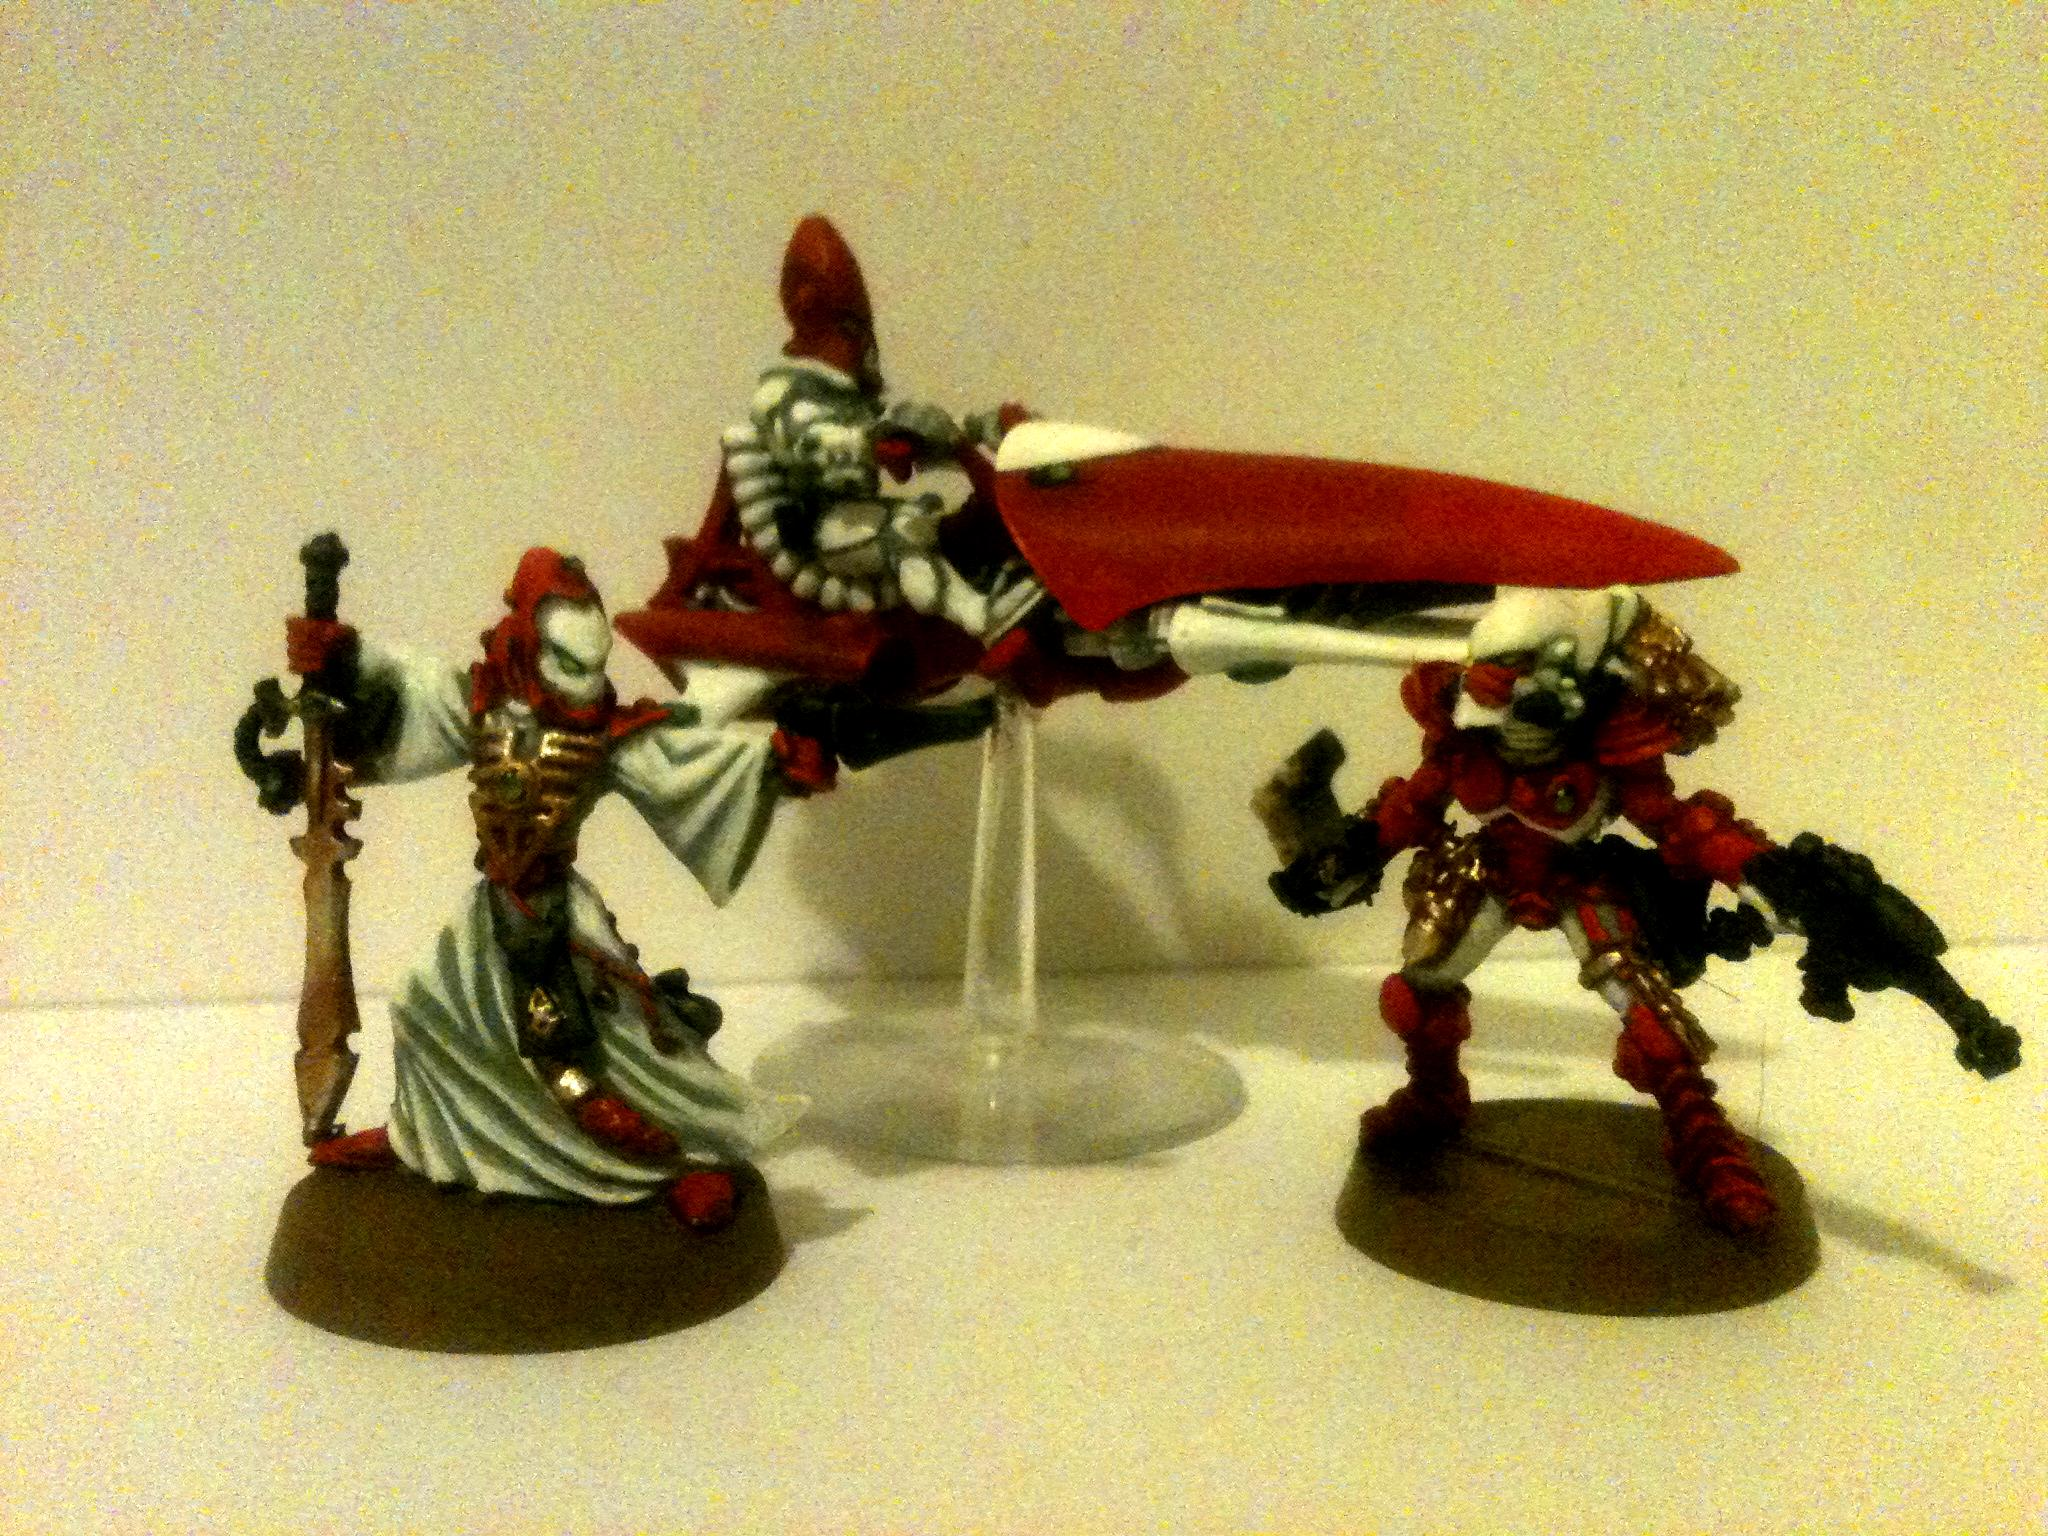 Eldar, Jetbike, Striking Scorpion, Warlock